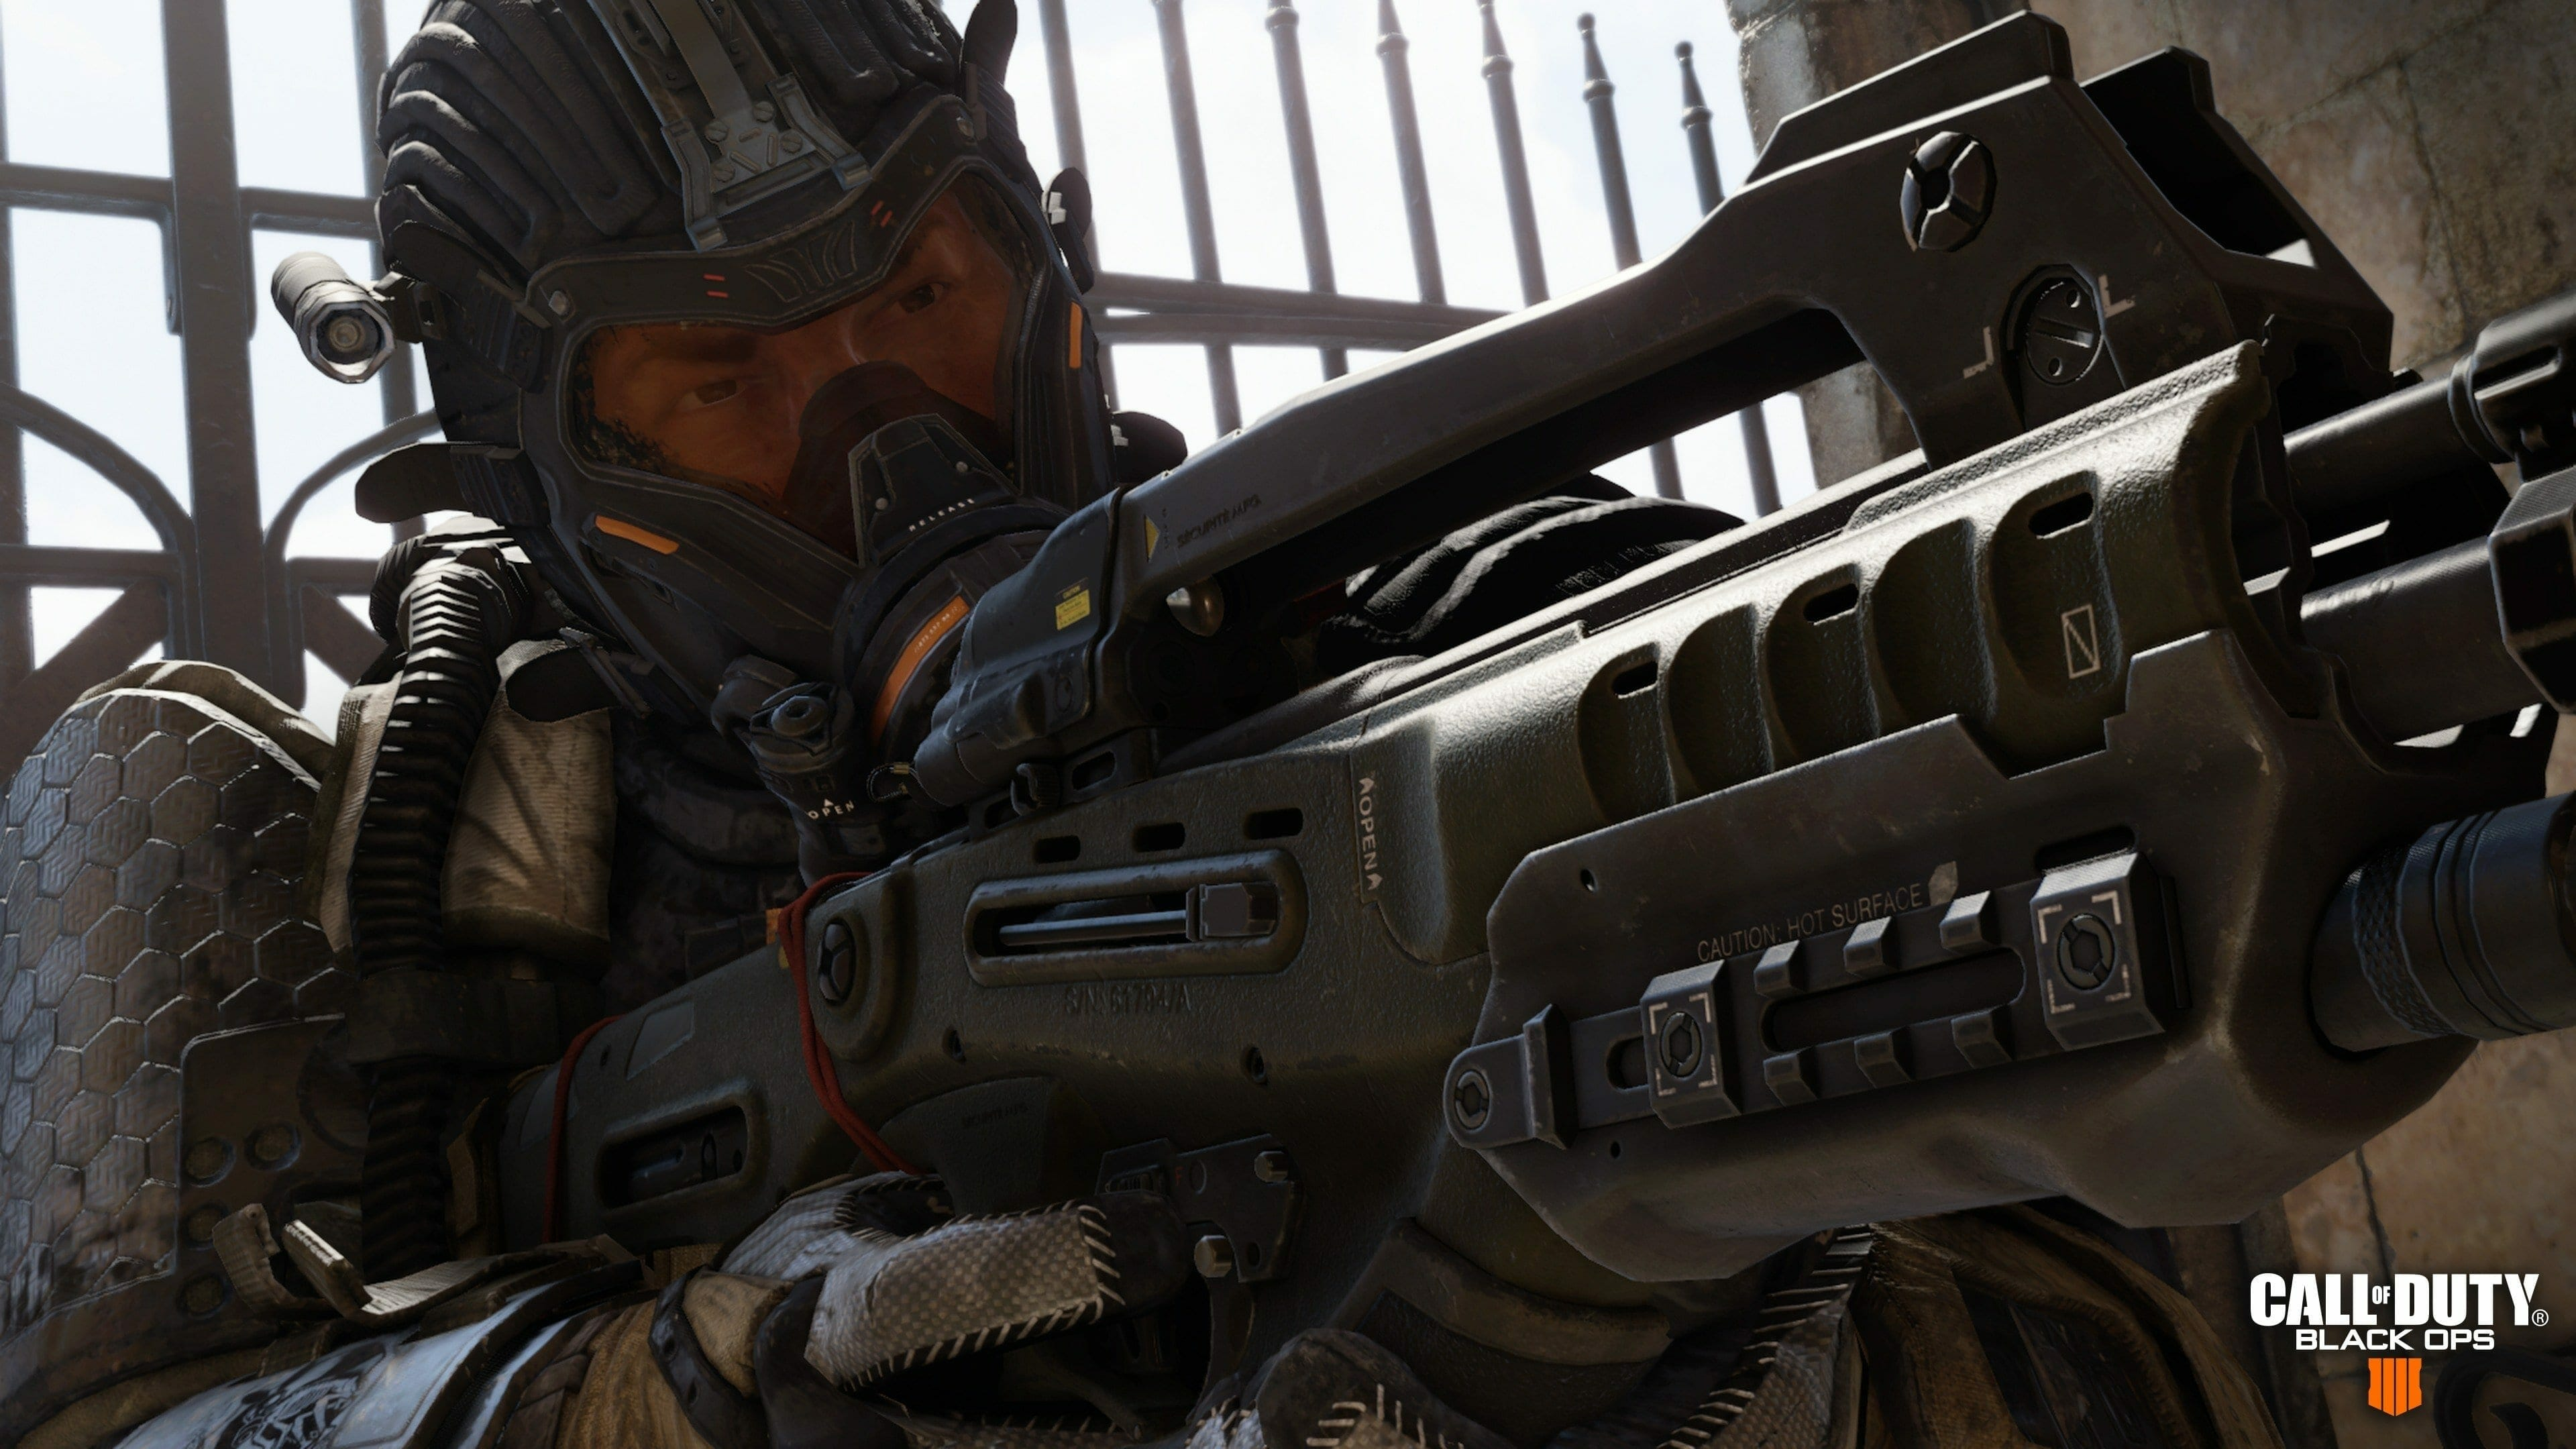 Black Ops 4 PC player counts have doubled over last year's game